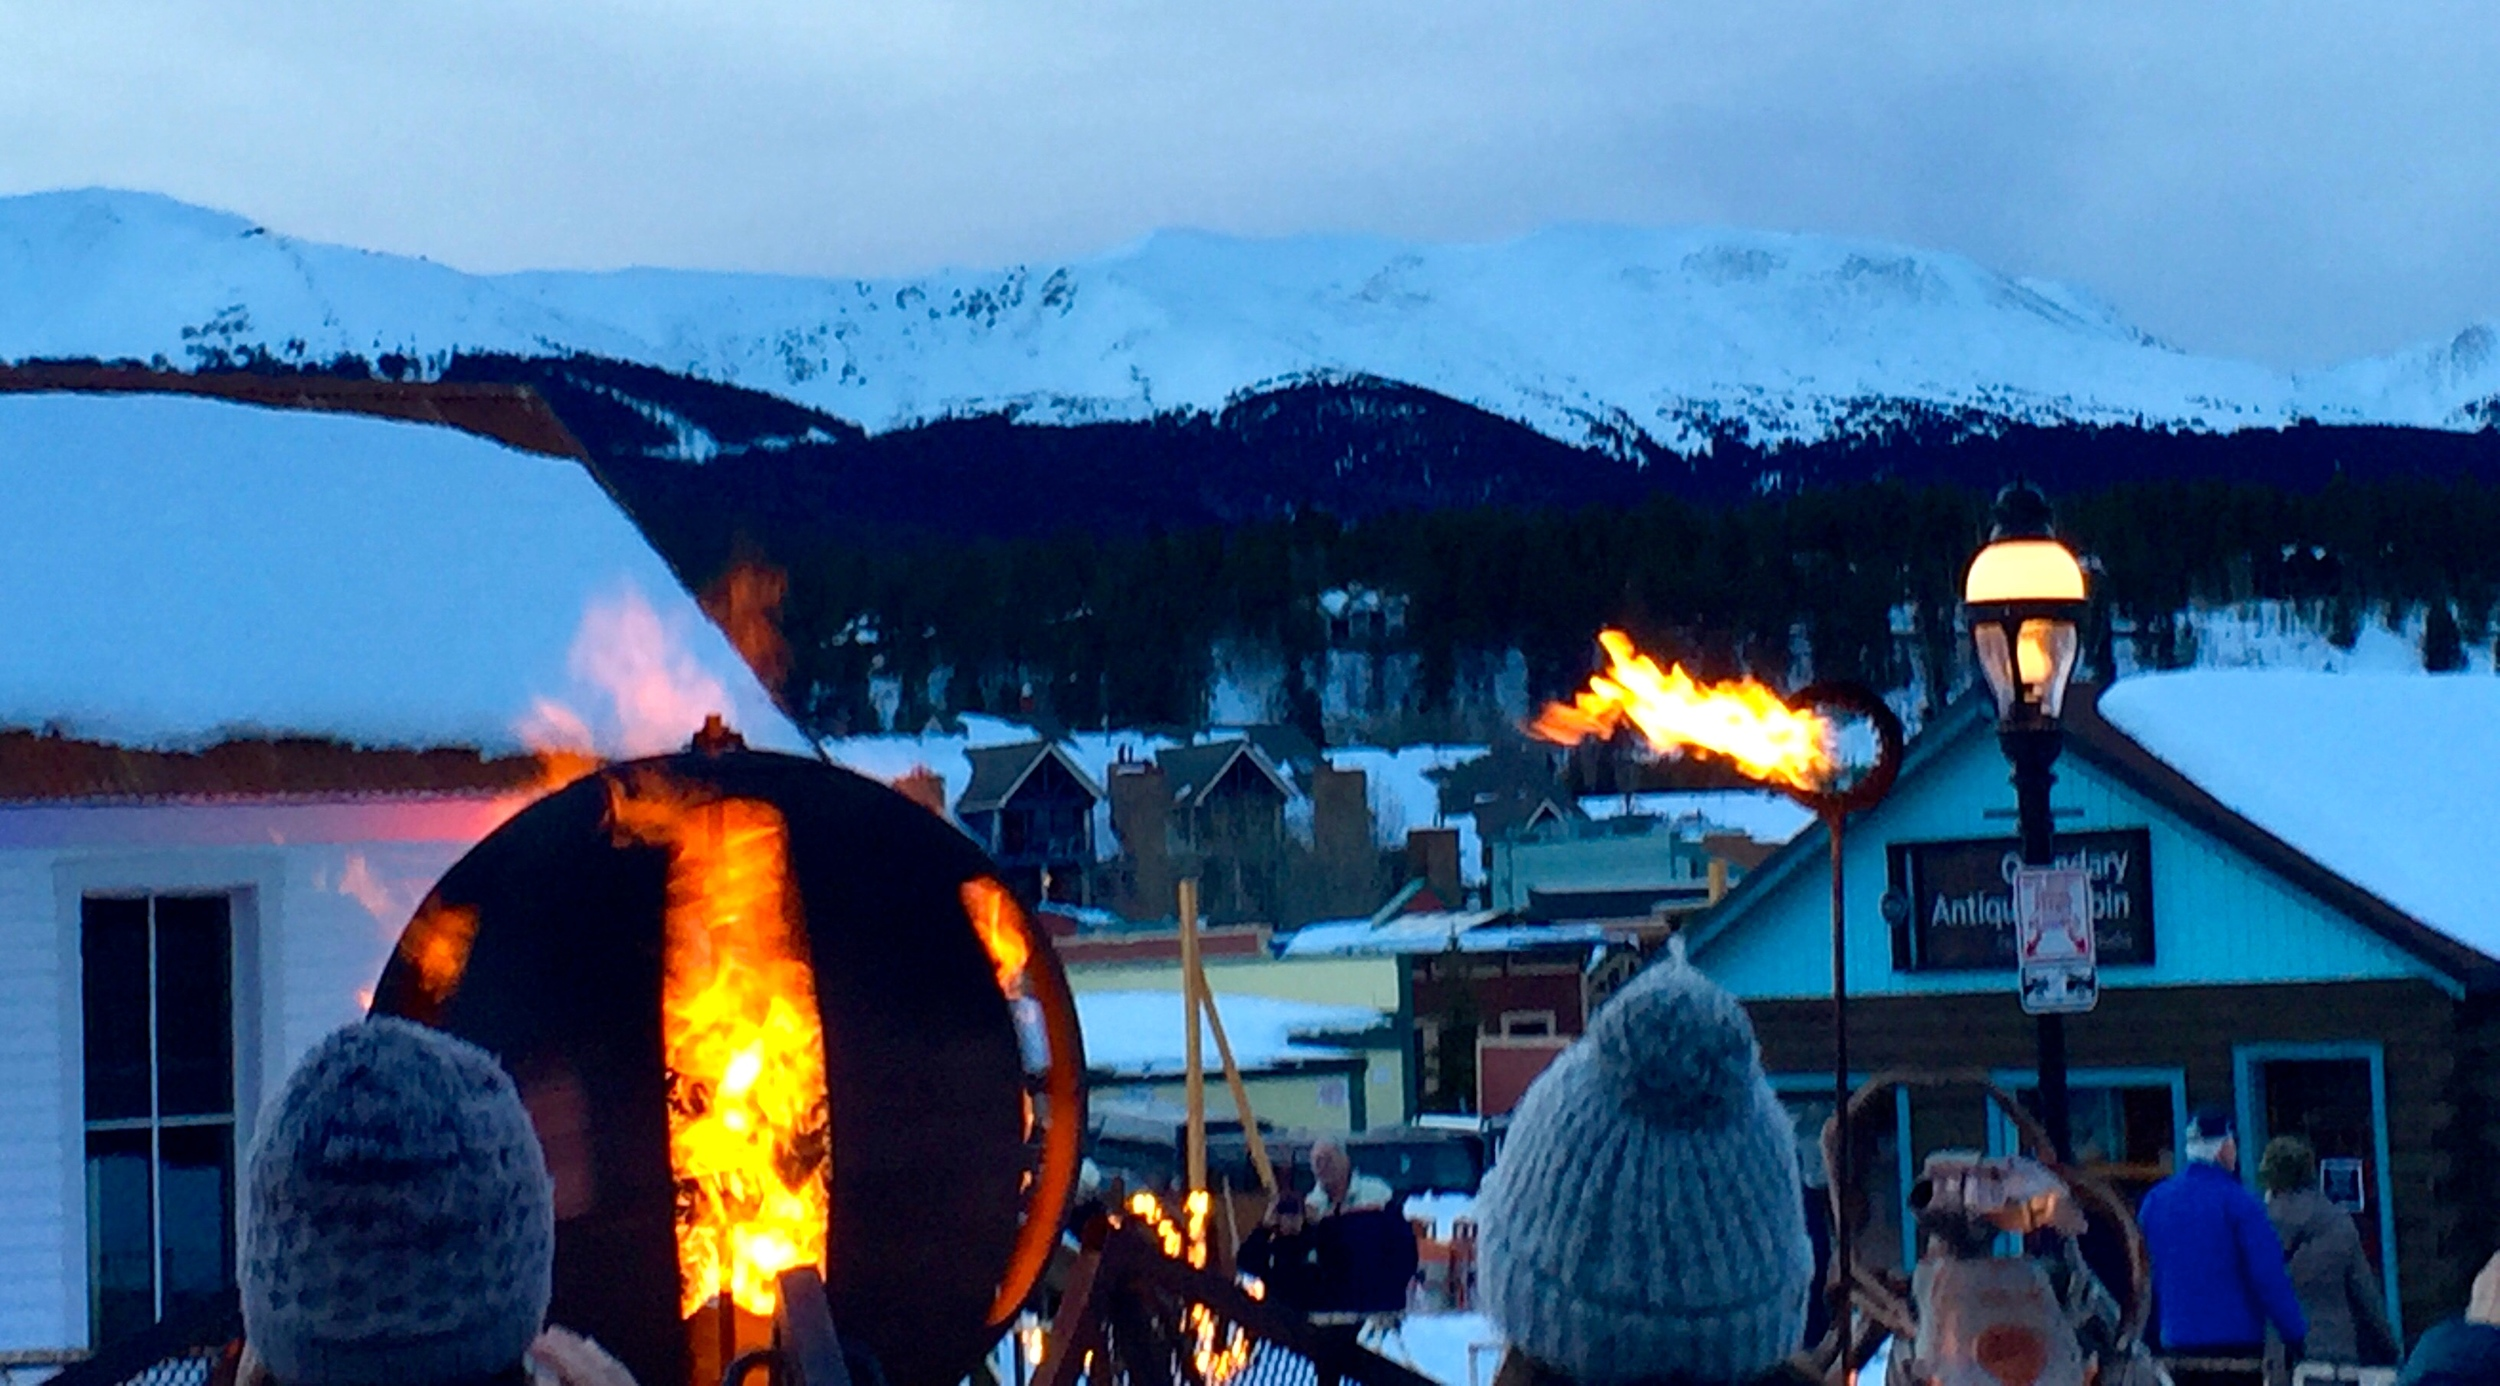 Super cool fire art in Breckenridge